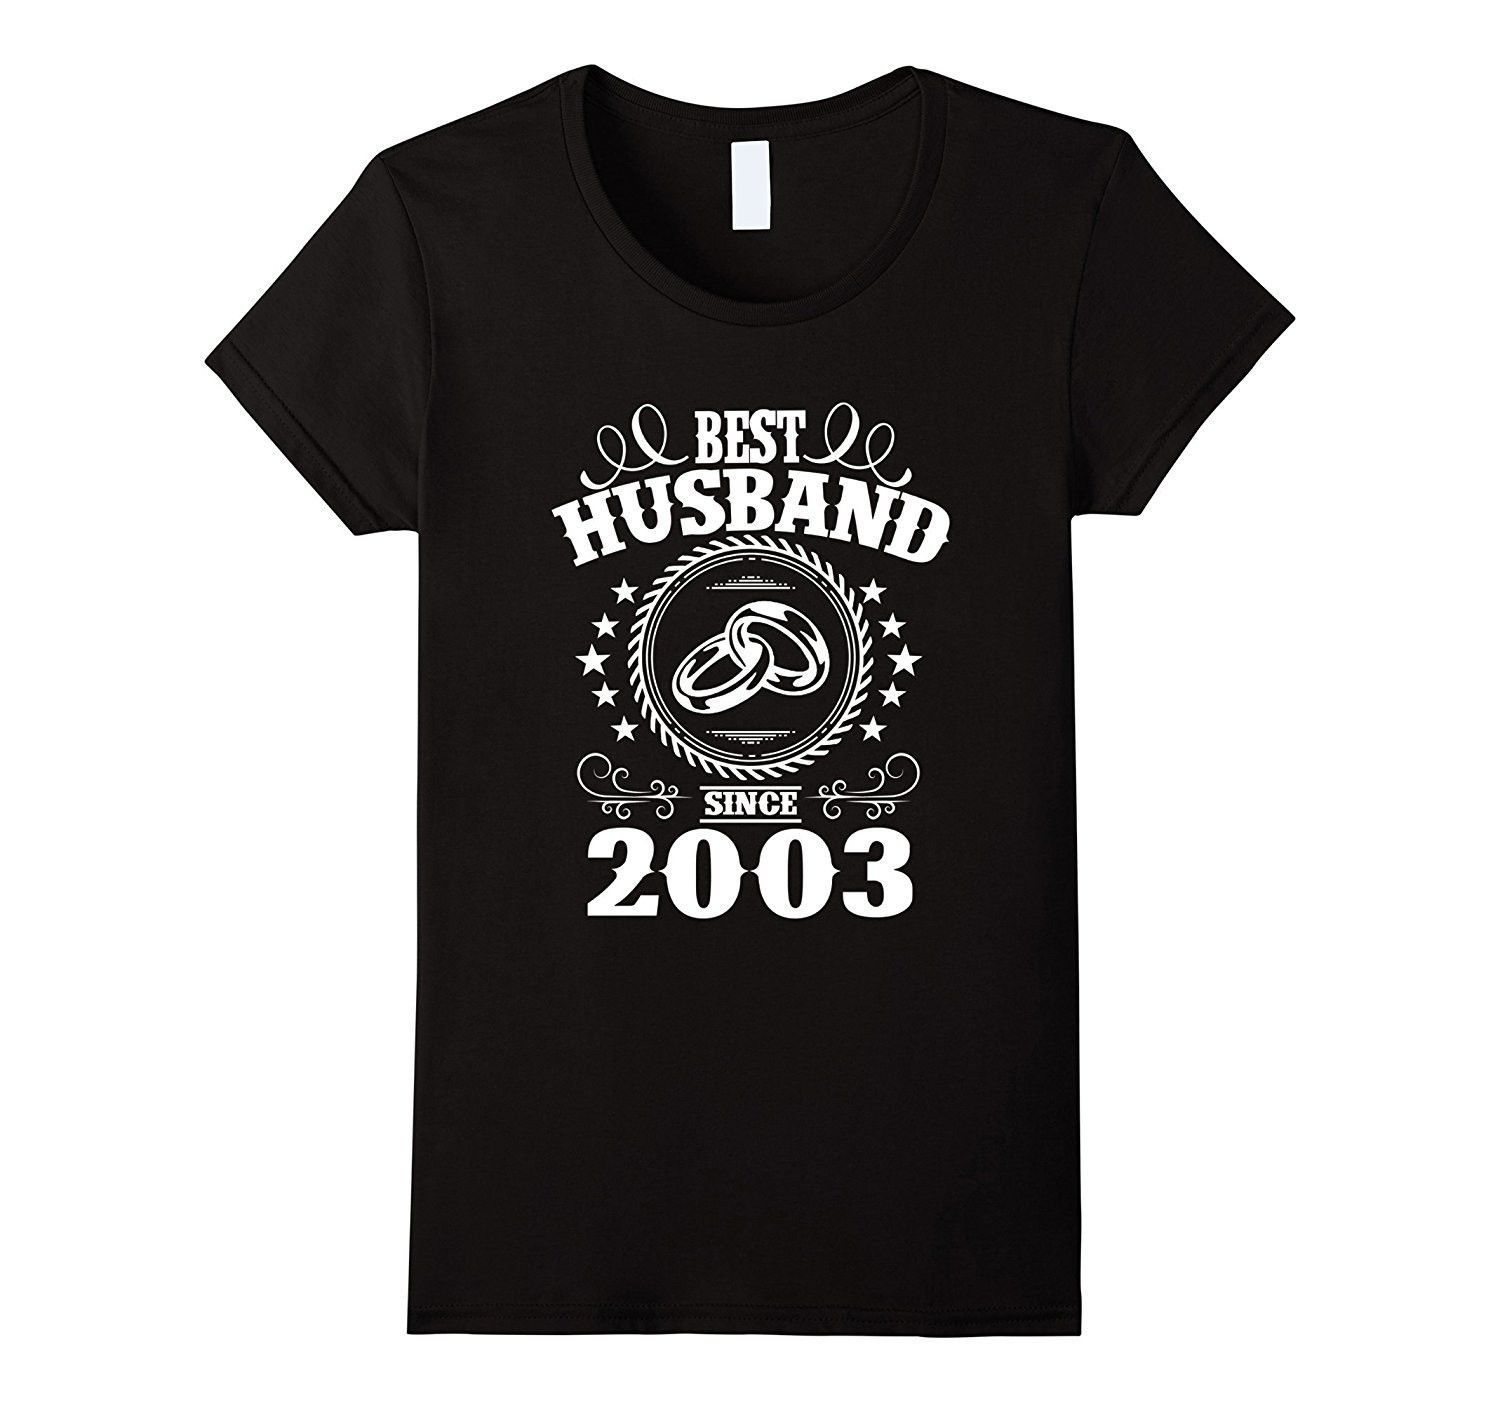 14th Wedding Anniversary T-Shirts For Husband From Wife